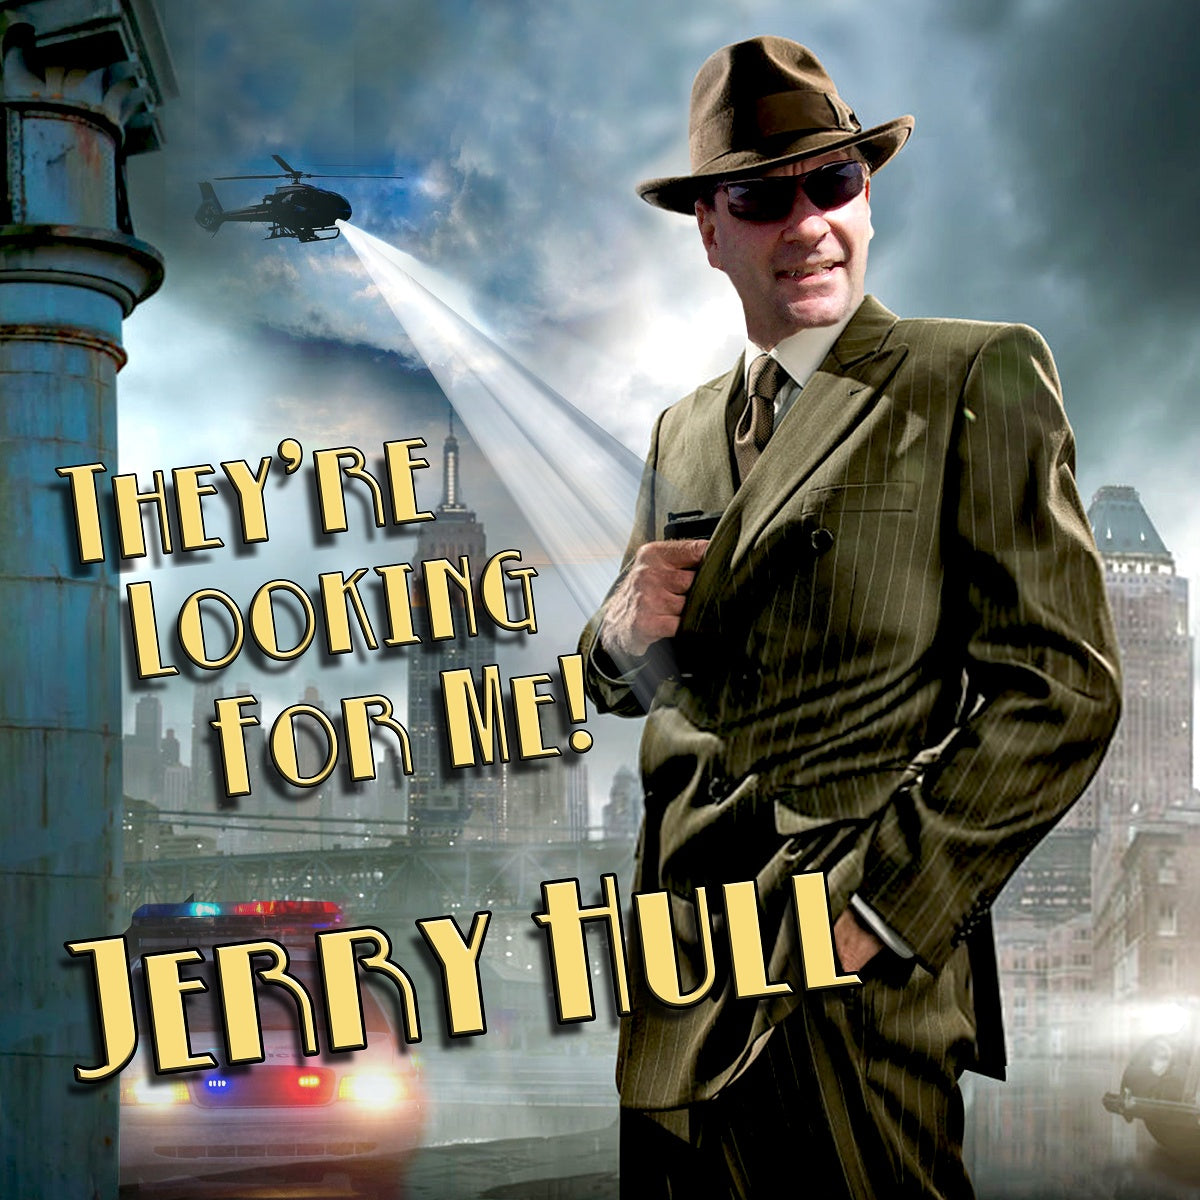 Jerry Hull – 'They're Looking for Me'